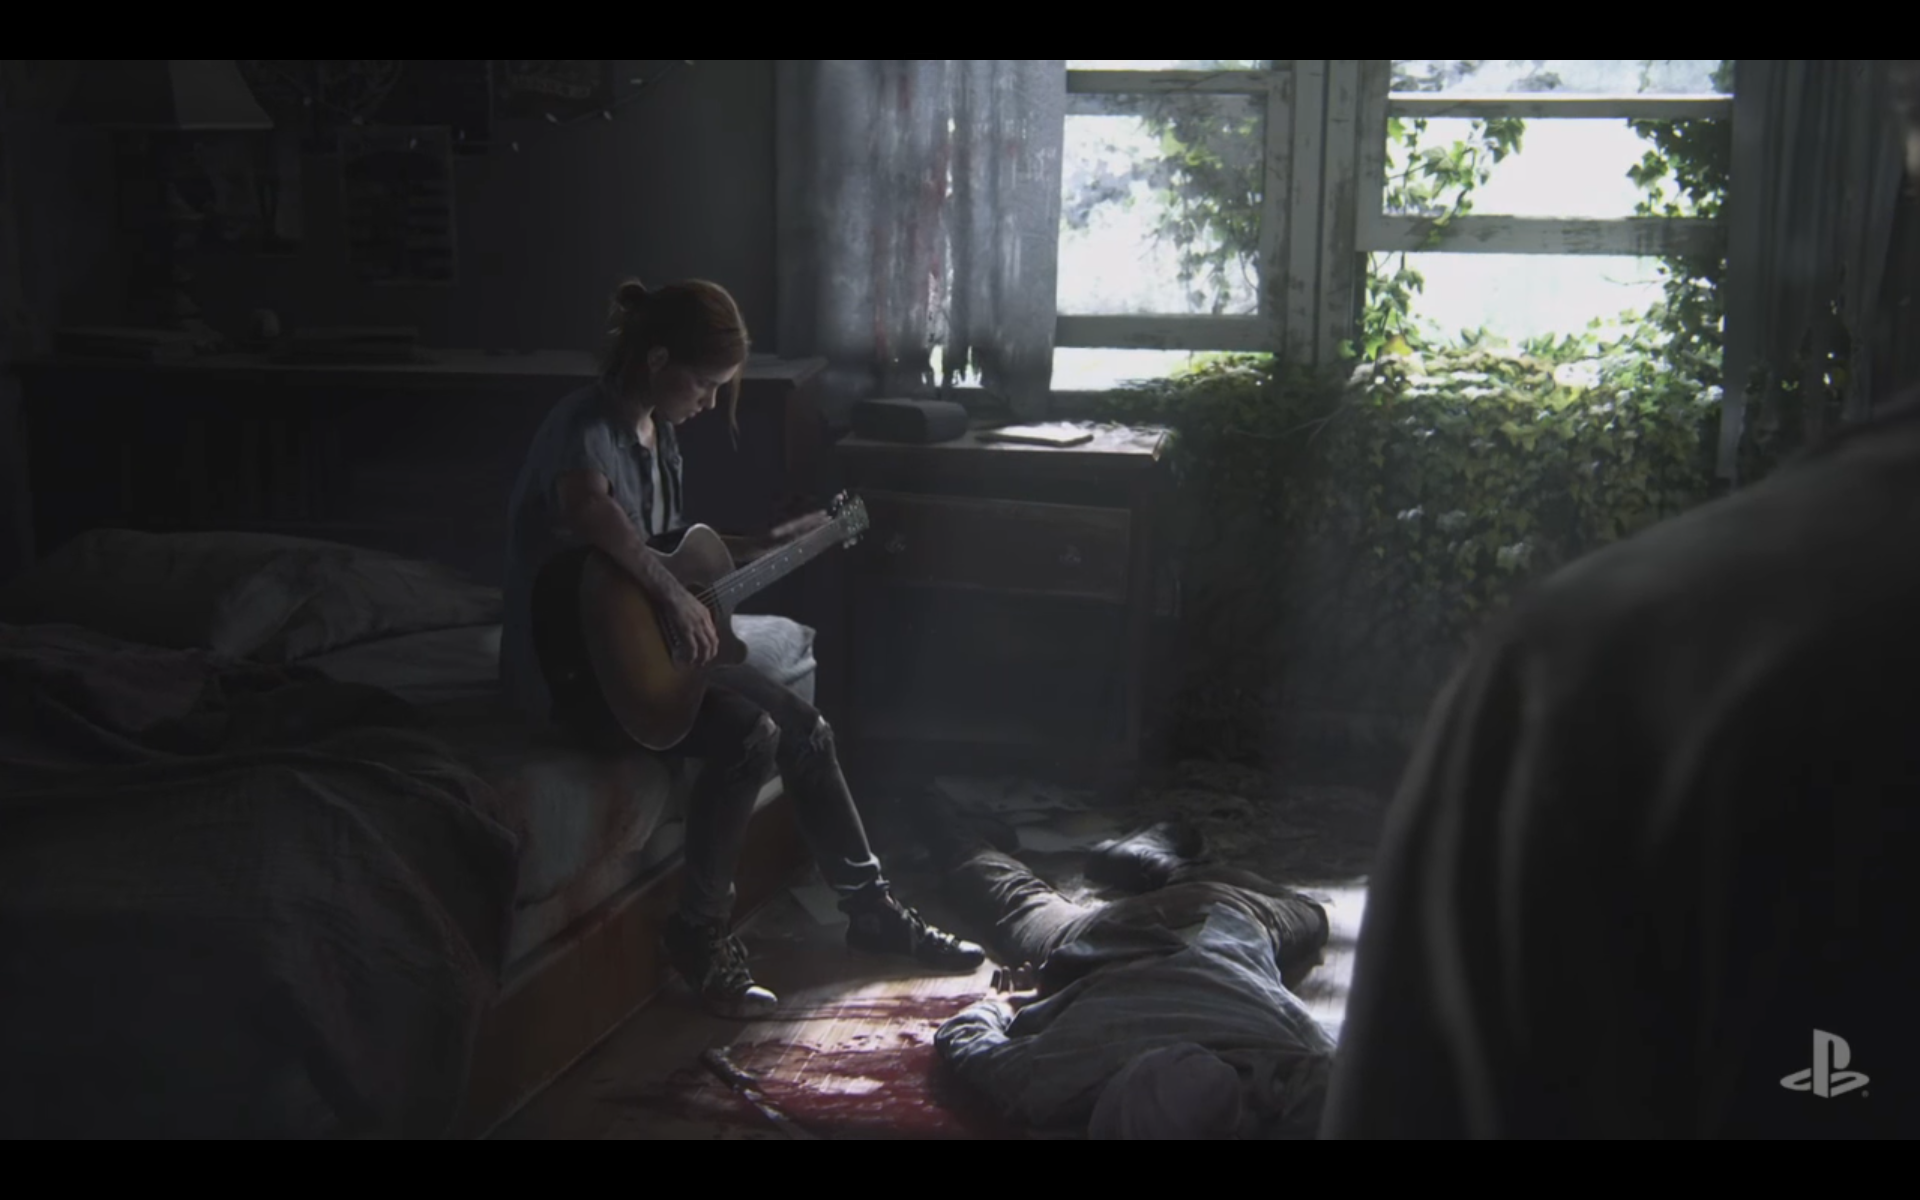 39 last of us 2 39 spoilers story questions ellie 39 s pre determined fate vs random human choice. Black Bedroom Furniture Sets. Home Design Ideas